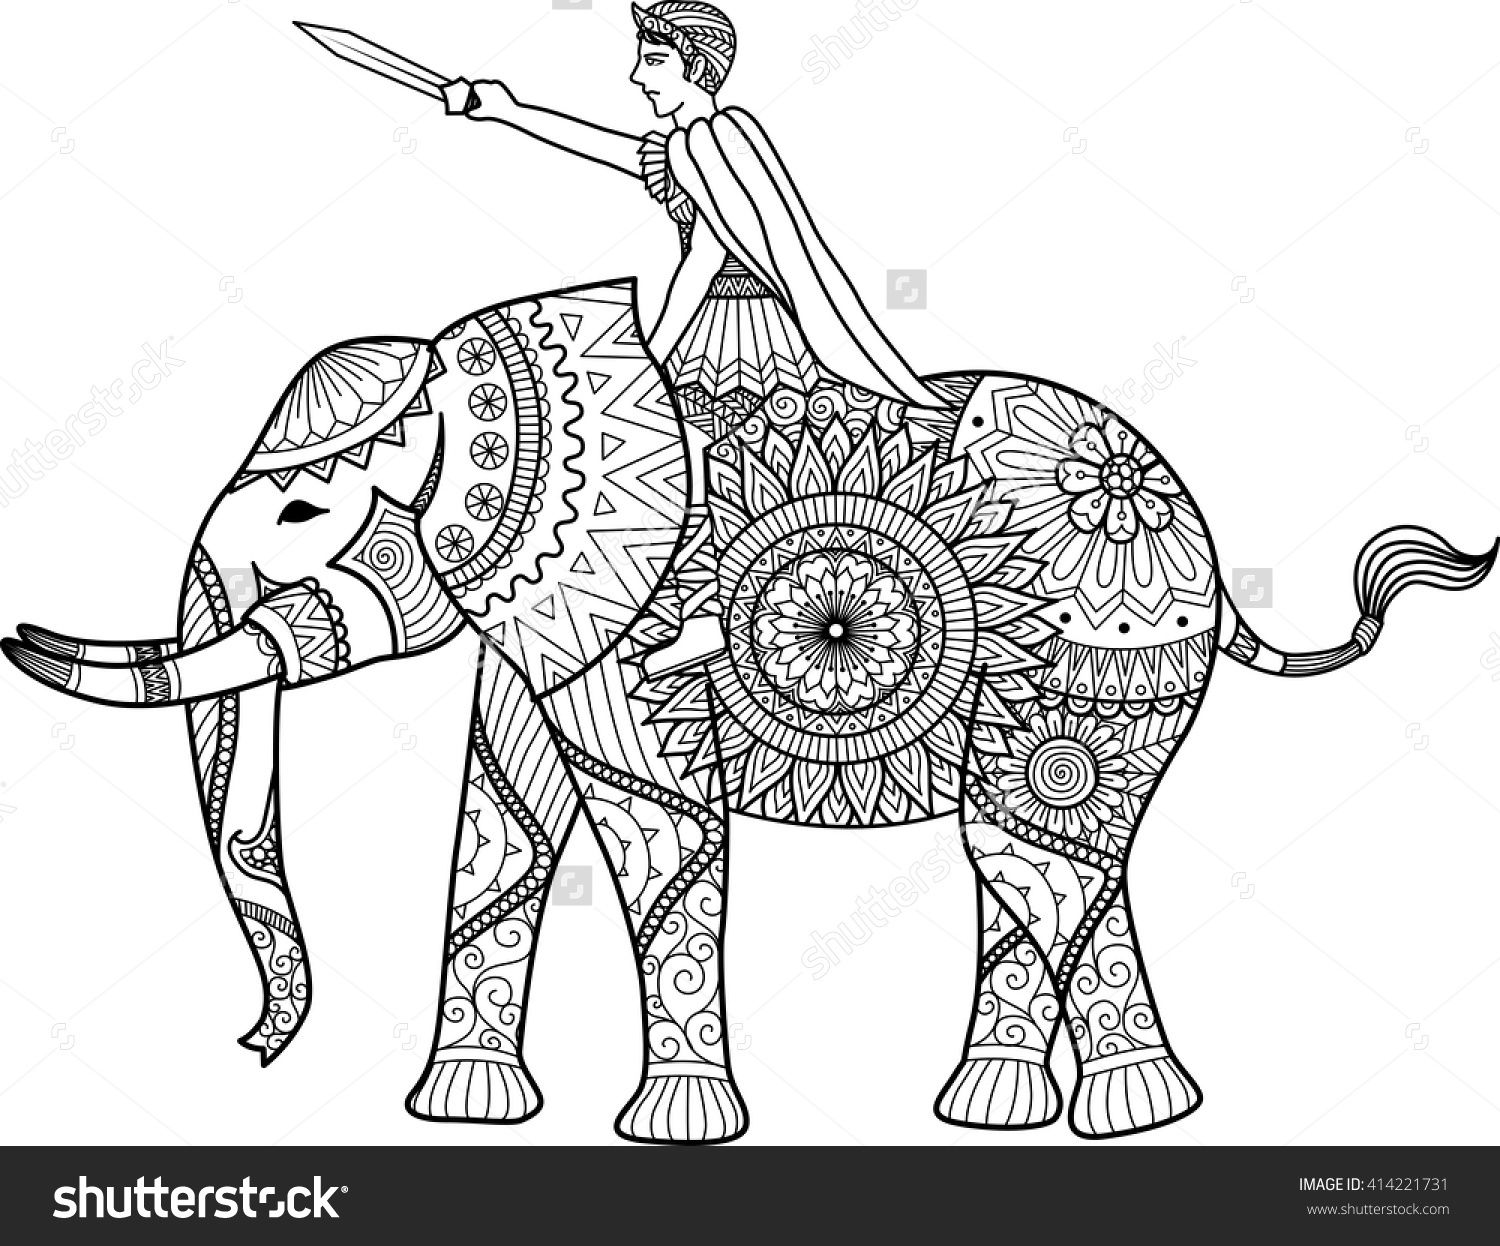 Zentangle sylized of warrior riding elephant coloring book for adult ...